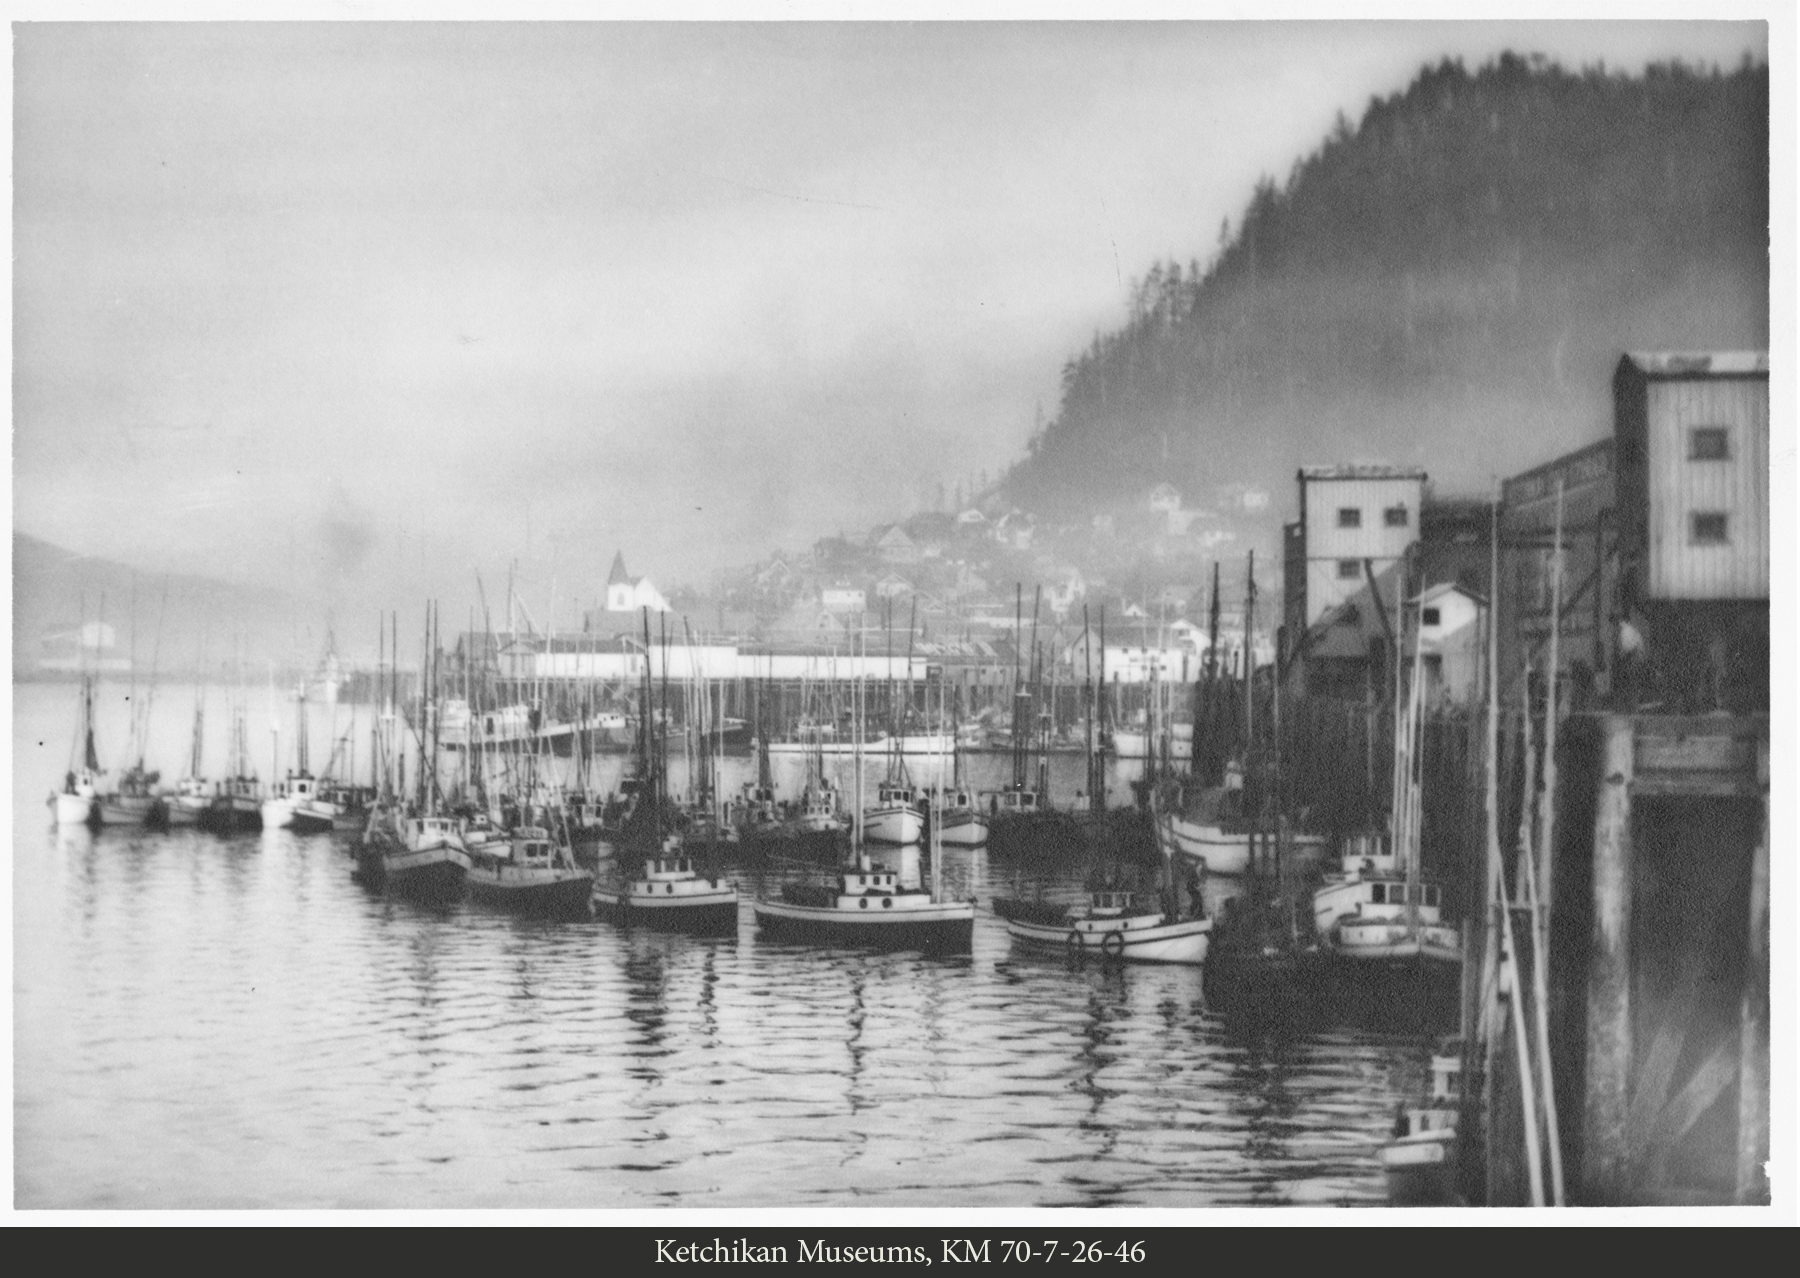 Trollers strung out at the Ketchikan Cold Storage Company dock